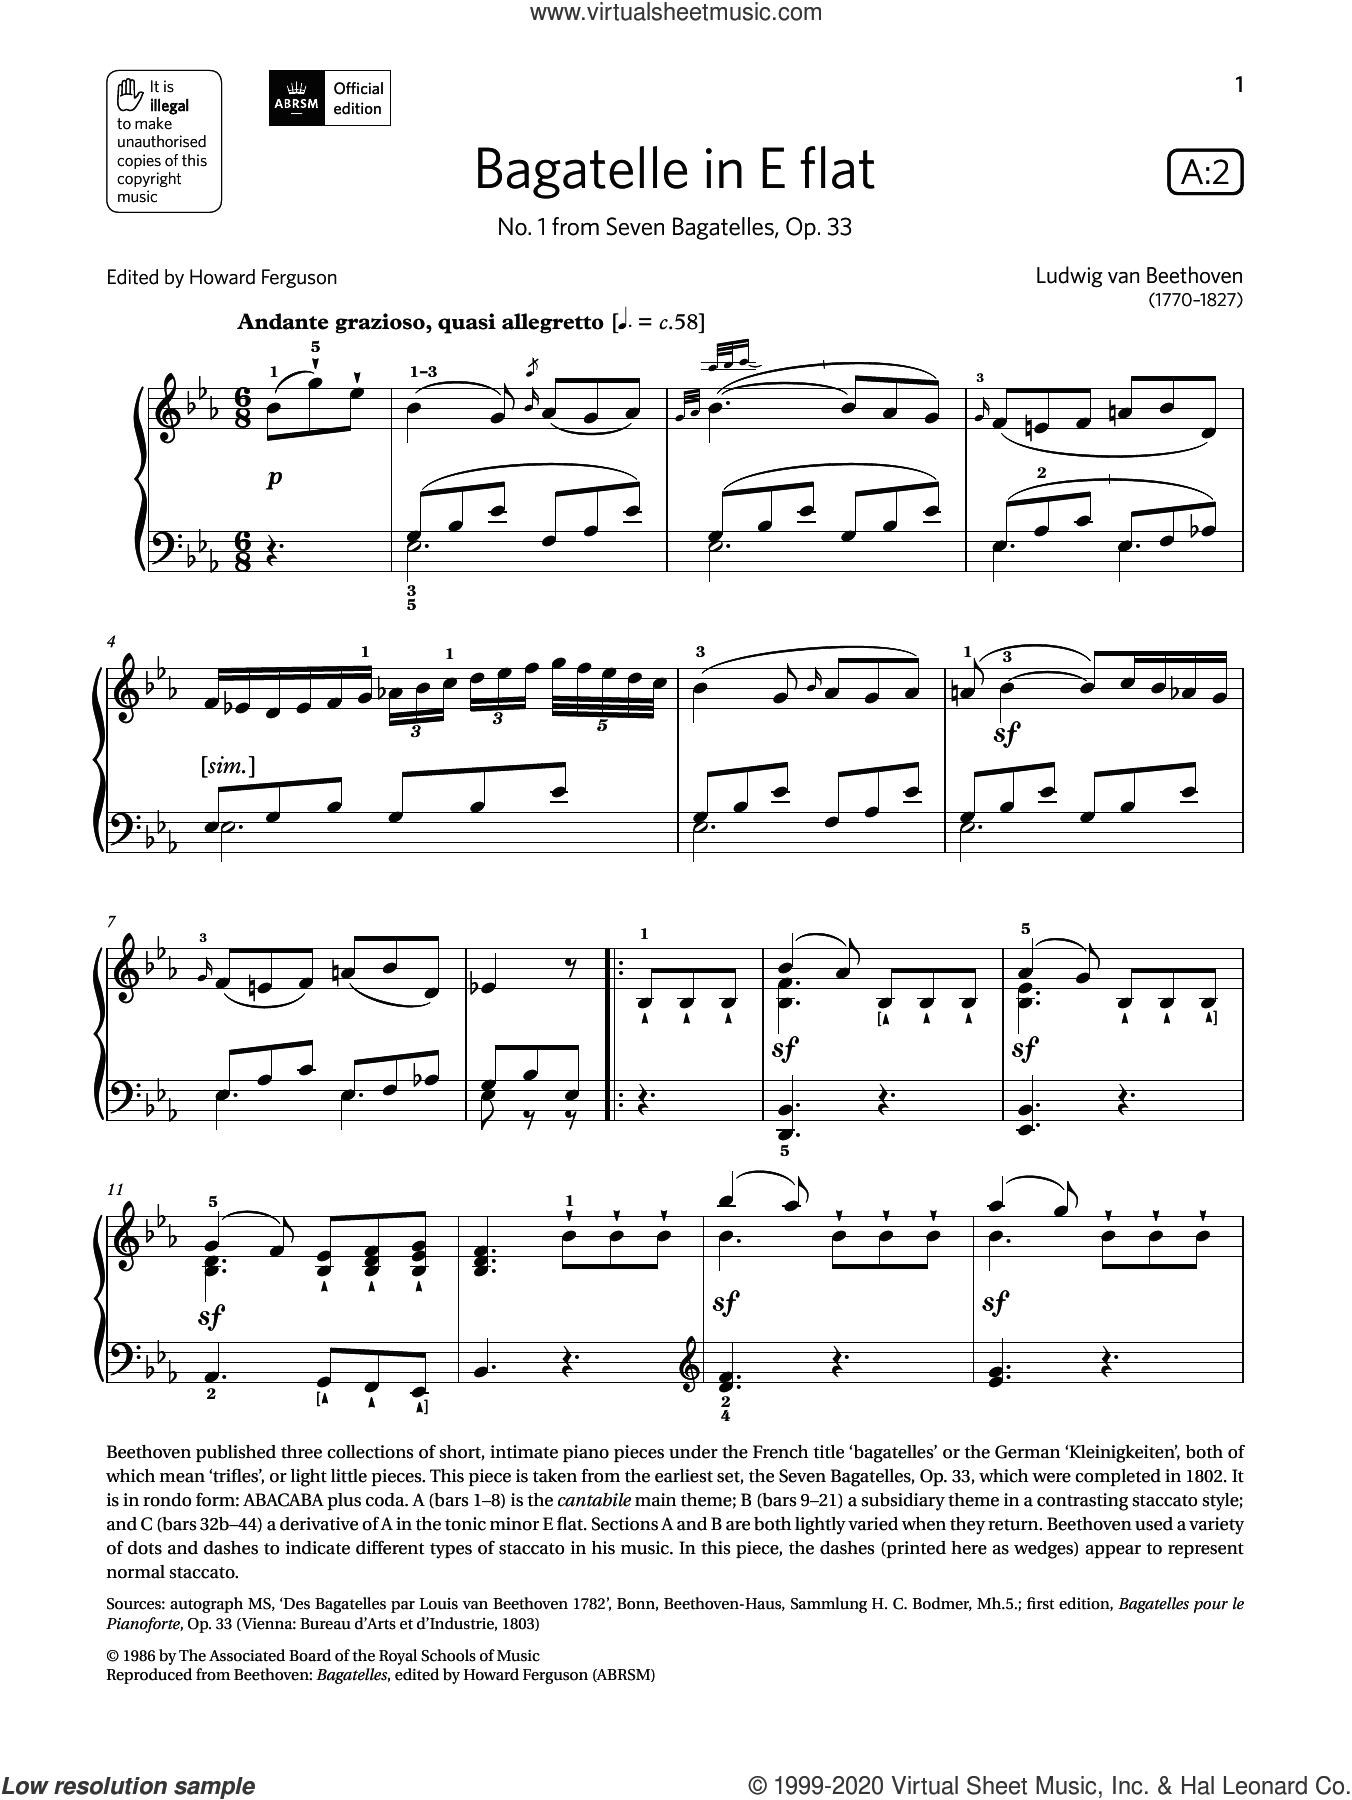 Bagatelle in E flat (Grade 7, list A2, from the ABRSM Piano Syllabus 2021 and 2022) sheet music for piano solo by Ludwig van Beethoven, classical score, intermediate skill level